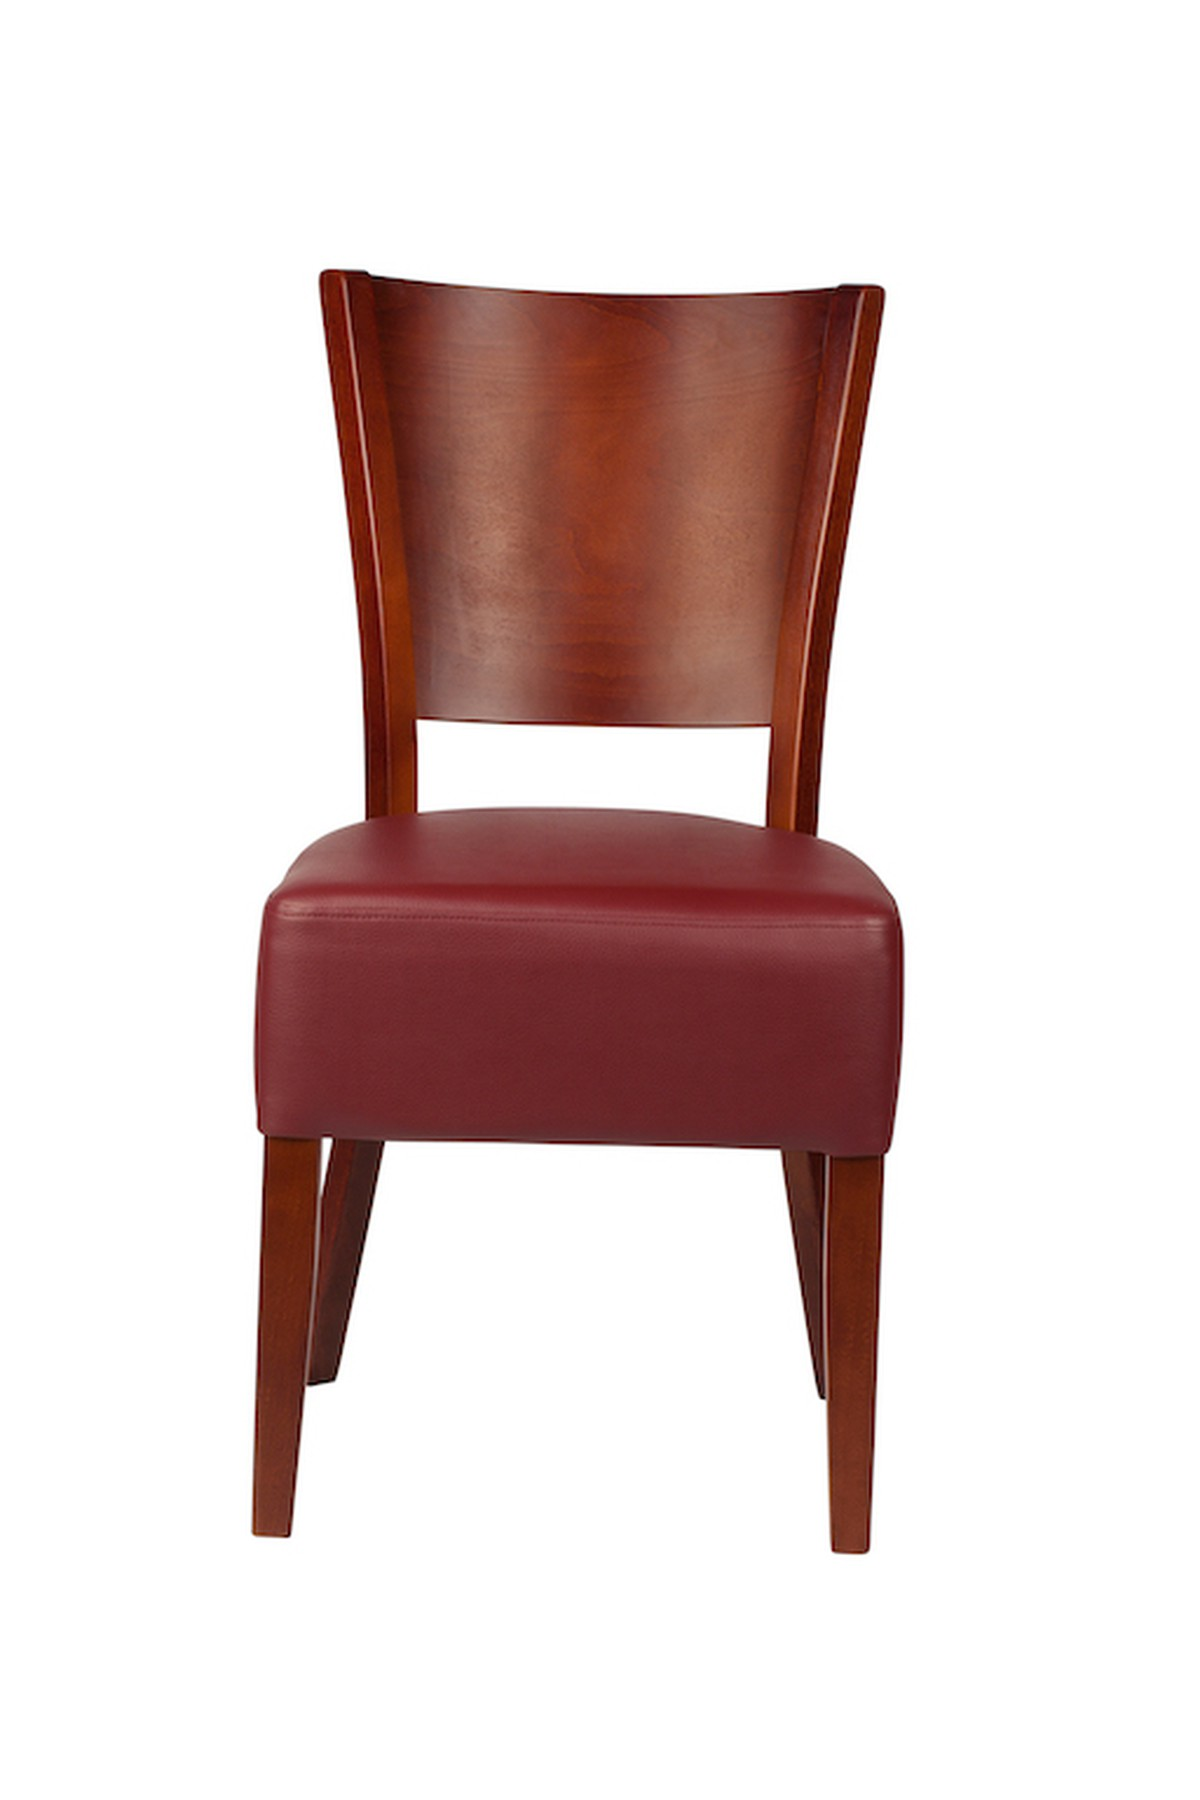 Designer Chairs Used Secondhand Chairs And Tables Pub And Bar Furniture